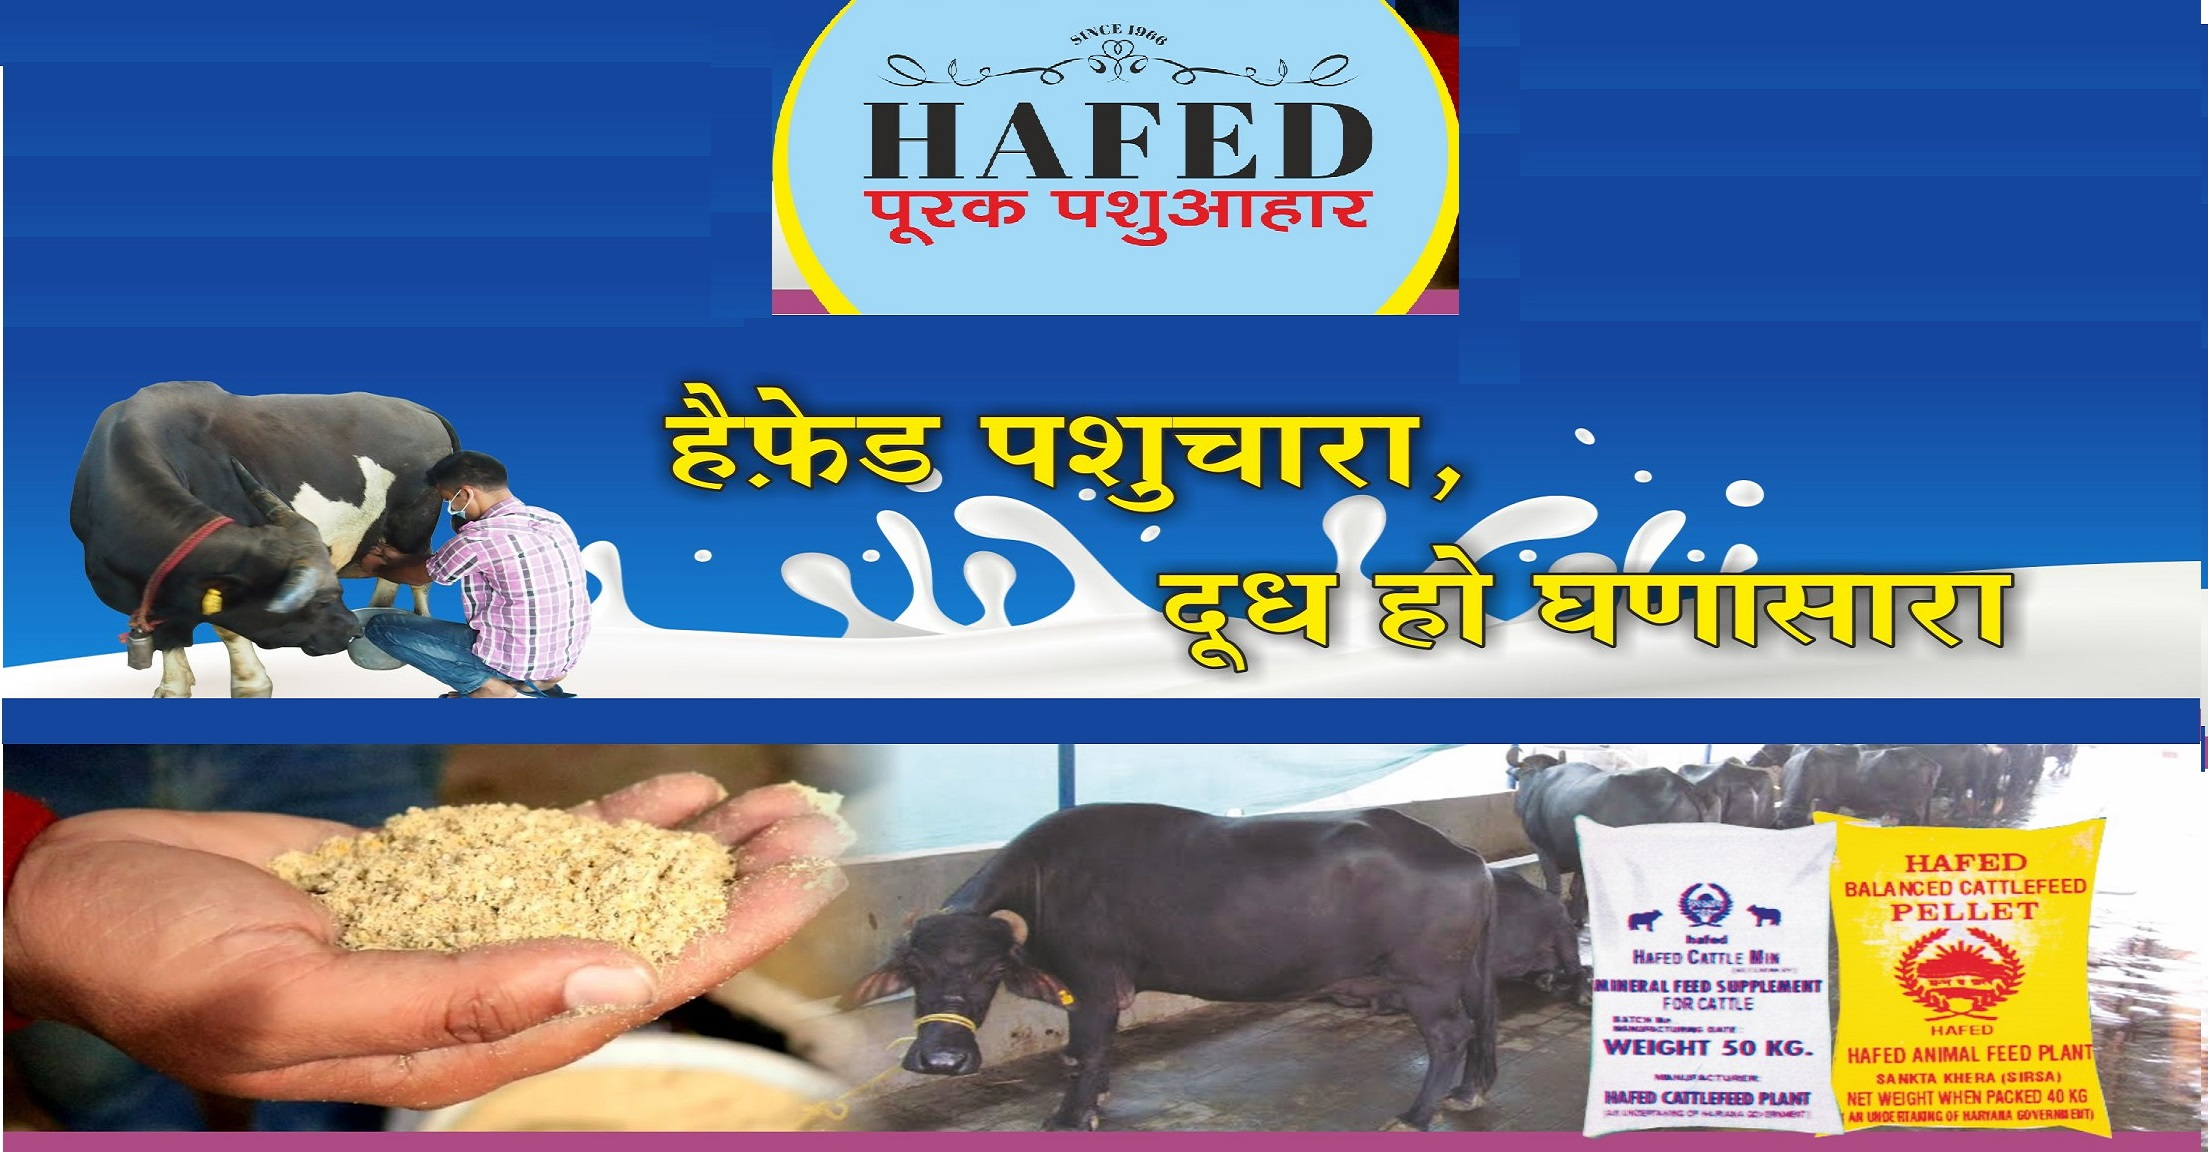 Hafed Cattle Feeds